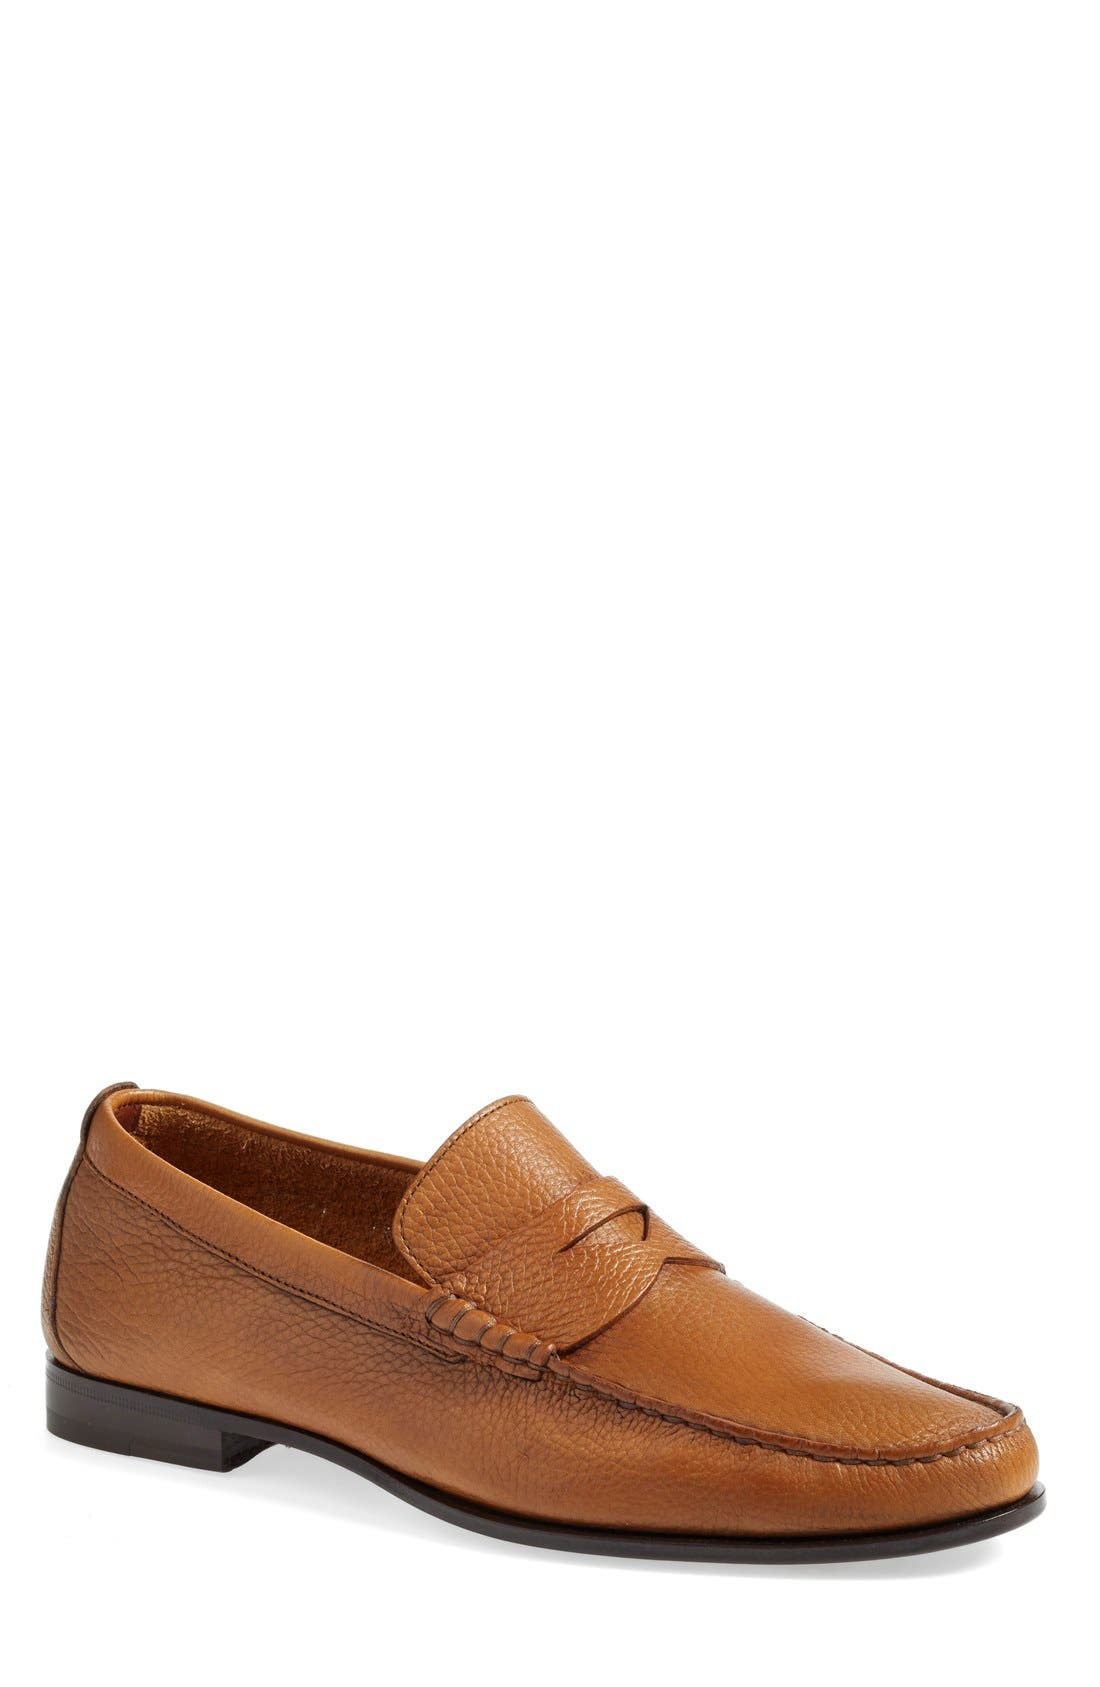 'Carmel' Penny Loafer,                         Main,                         color, Tan Leather